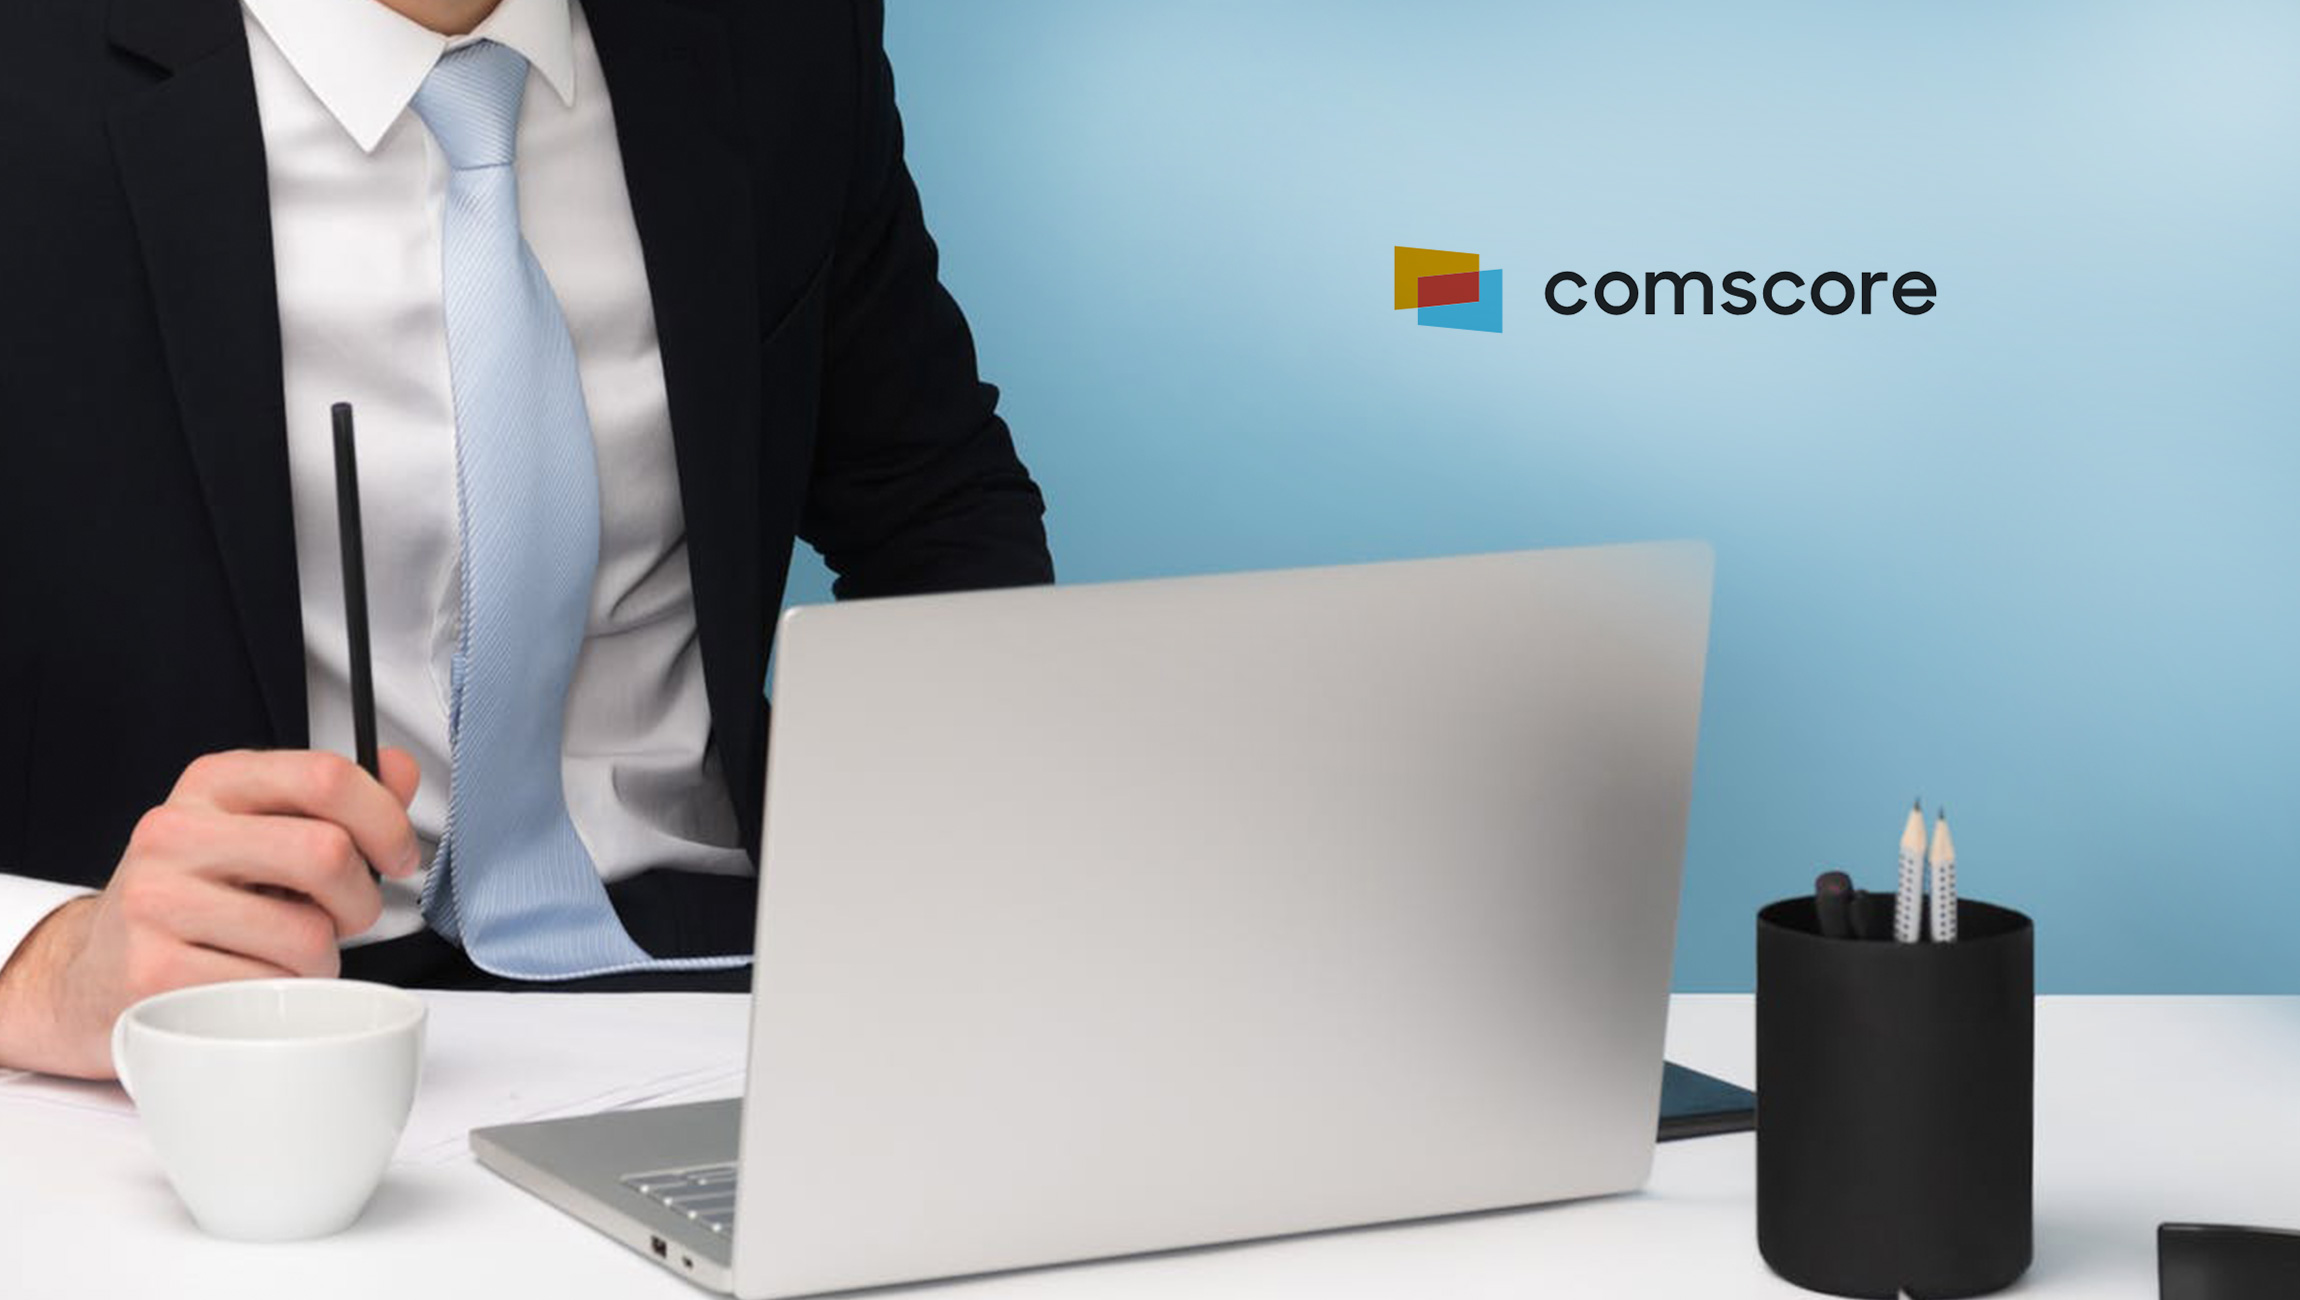 Comscore Signs Multi-Year Agreement with Nextdoor for Digital Audience Measurement